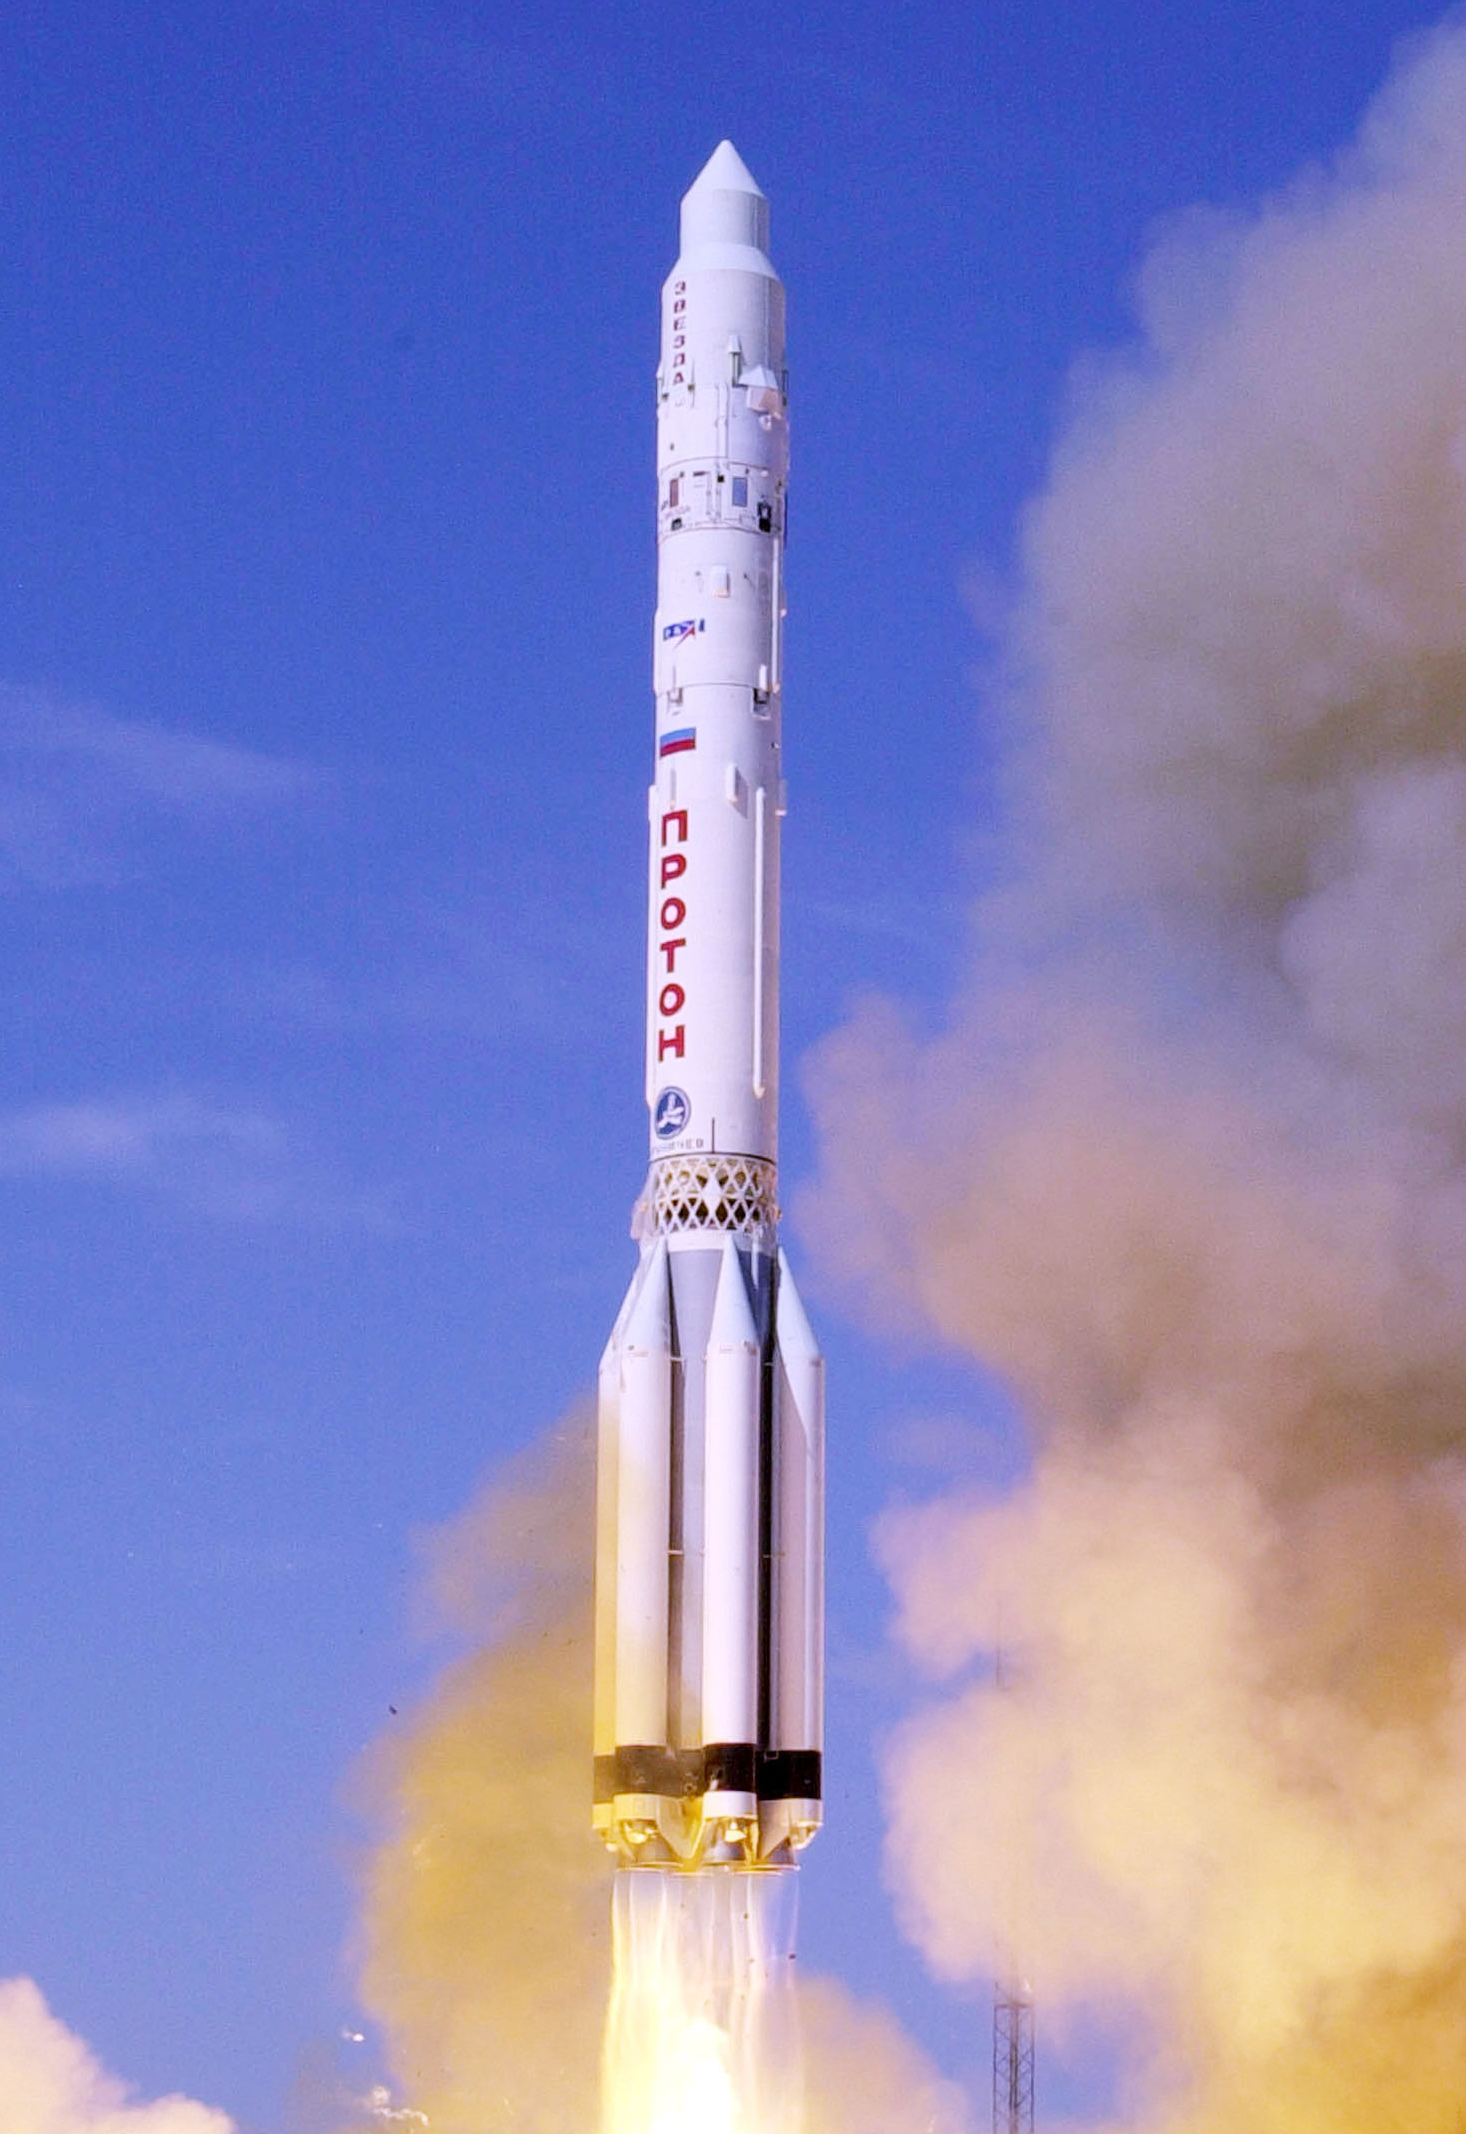 http://upload.wikimedia.org/wikipedia/commons/1/14/Proton_Zvezda_crop.jpg